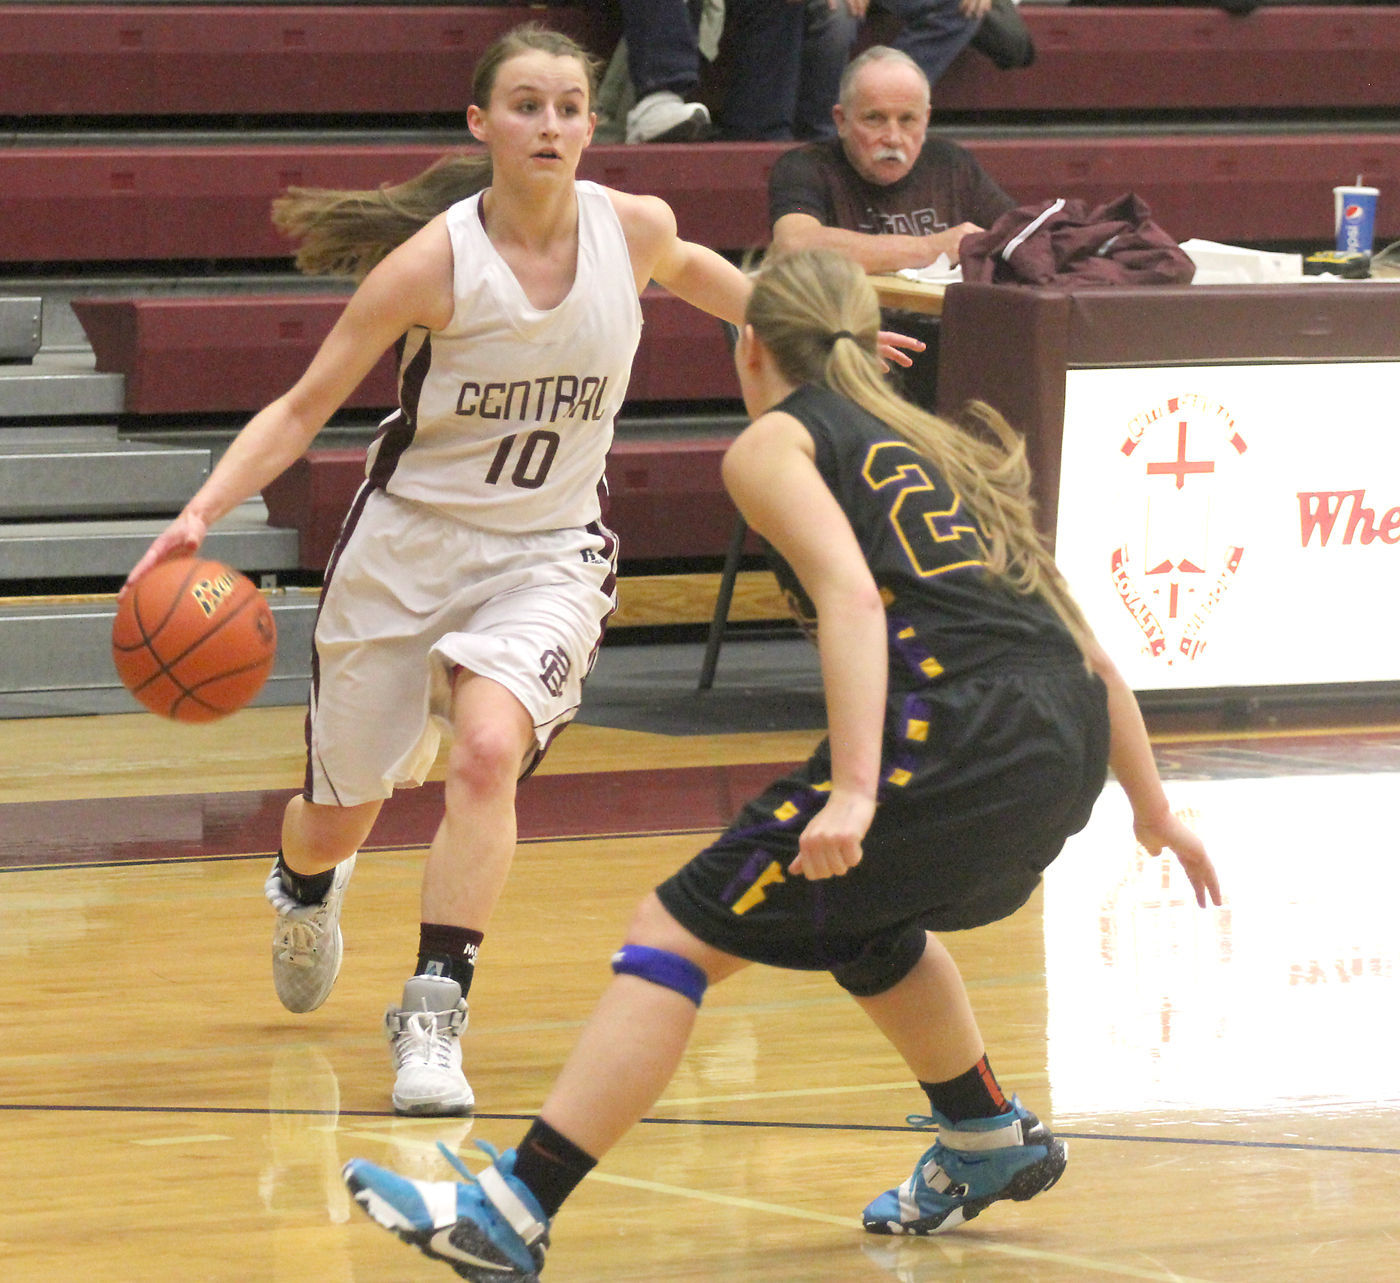 Butte Central Girls Remain Perfect at 14-0